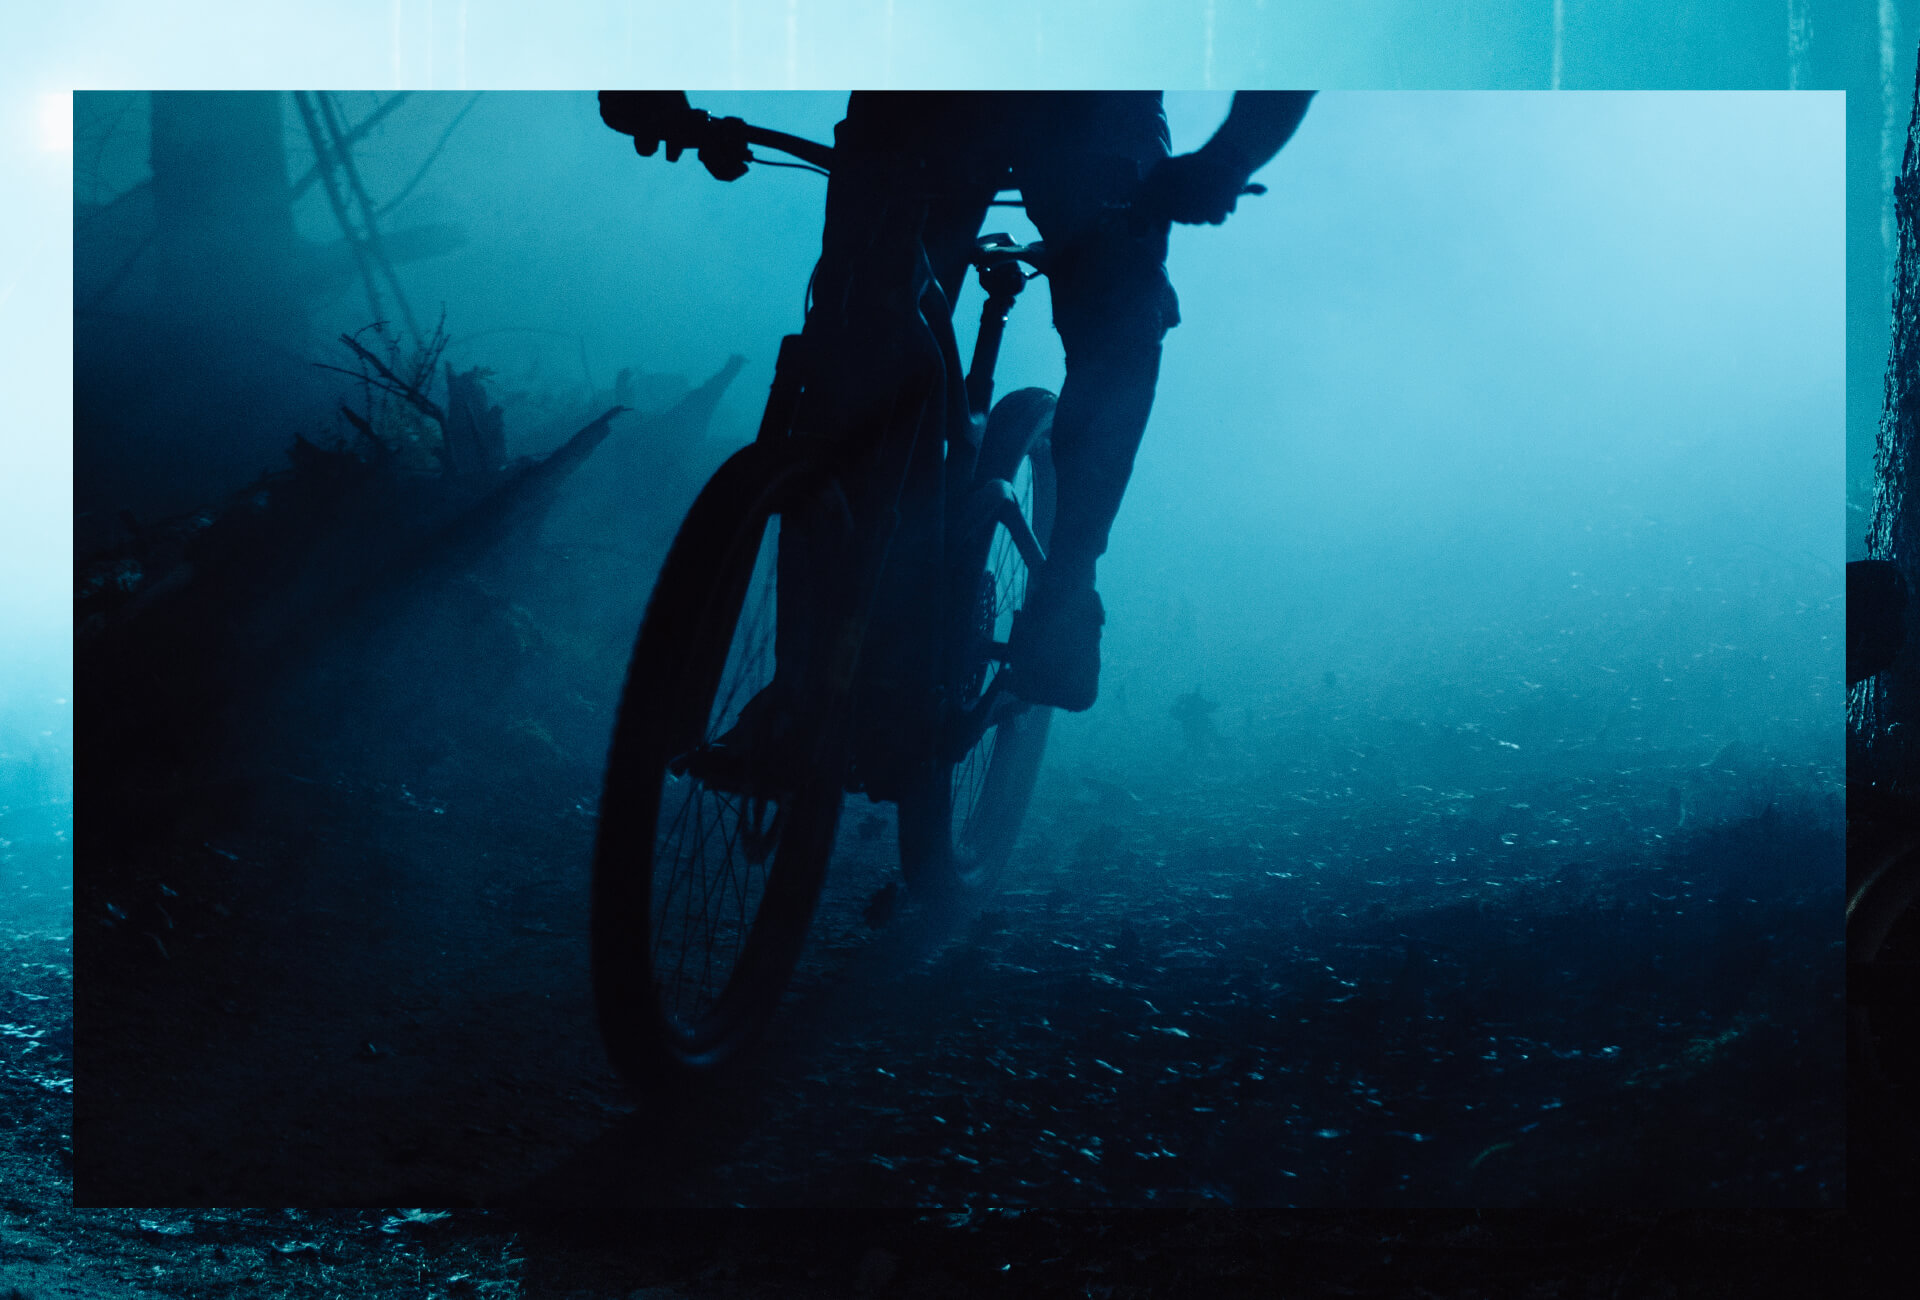 Someone riding a mountain bike through a dark forest with blue lights in the background